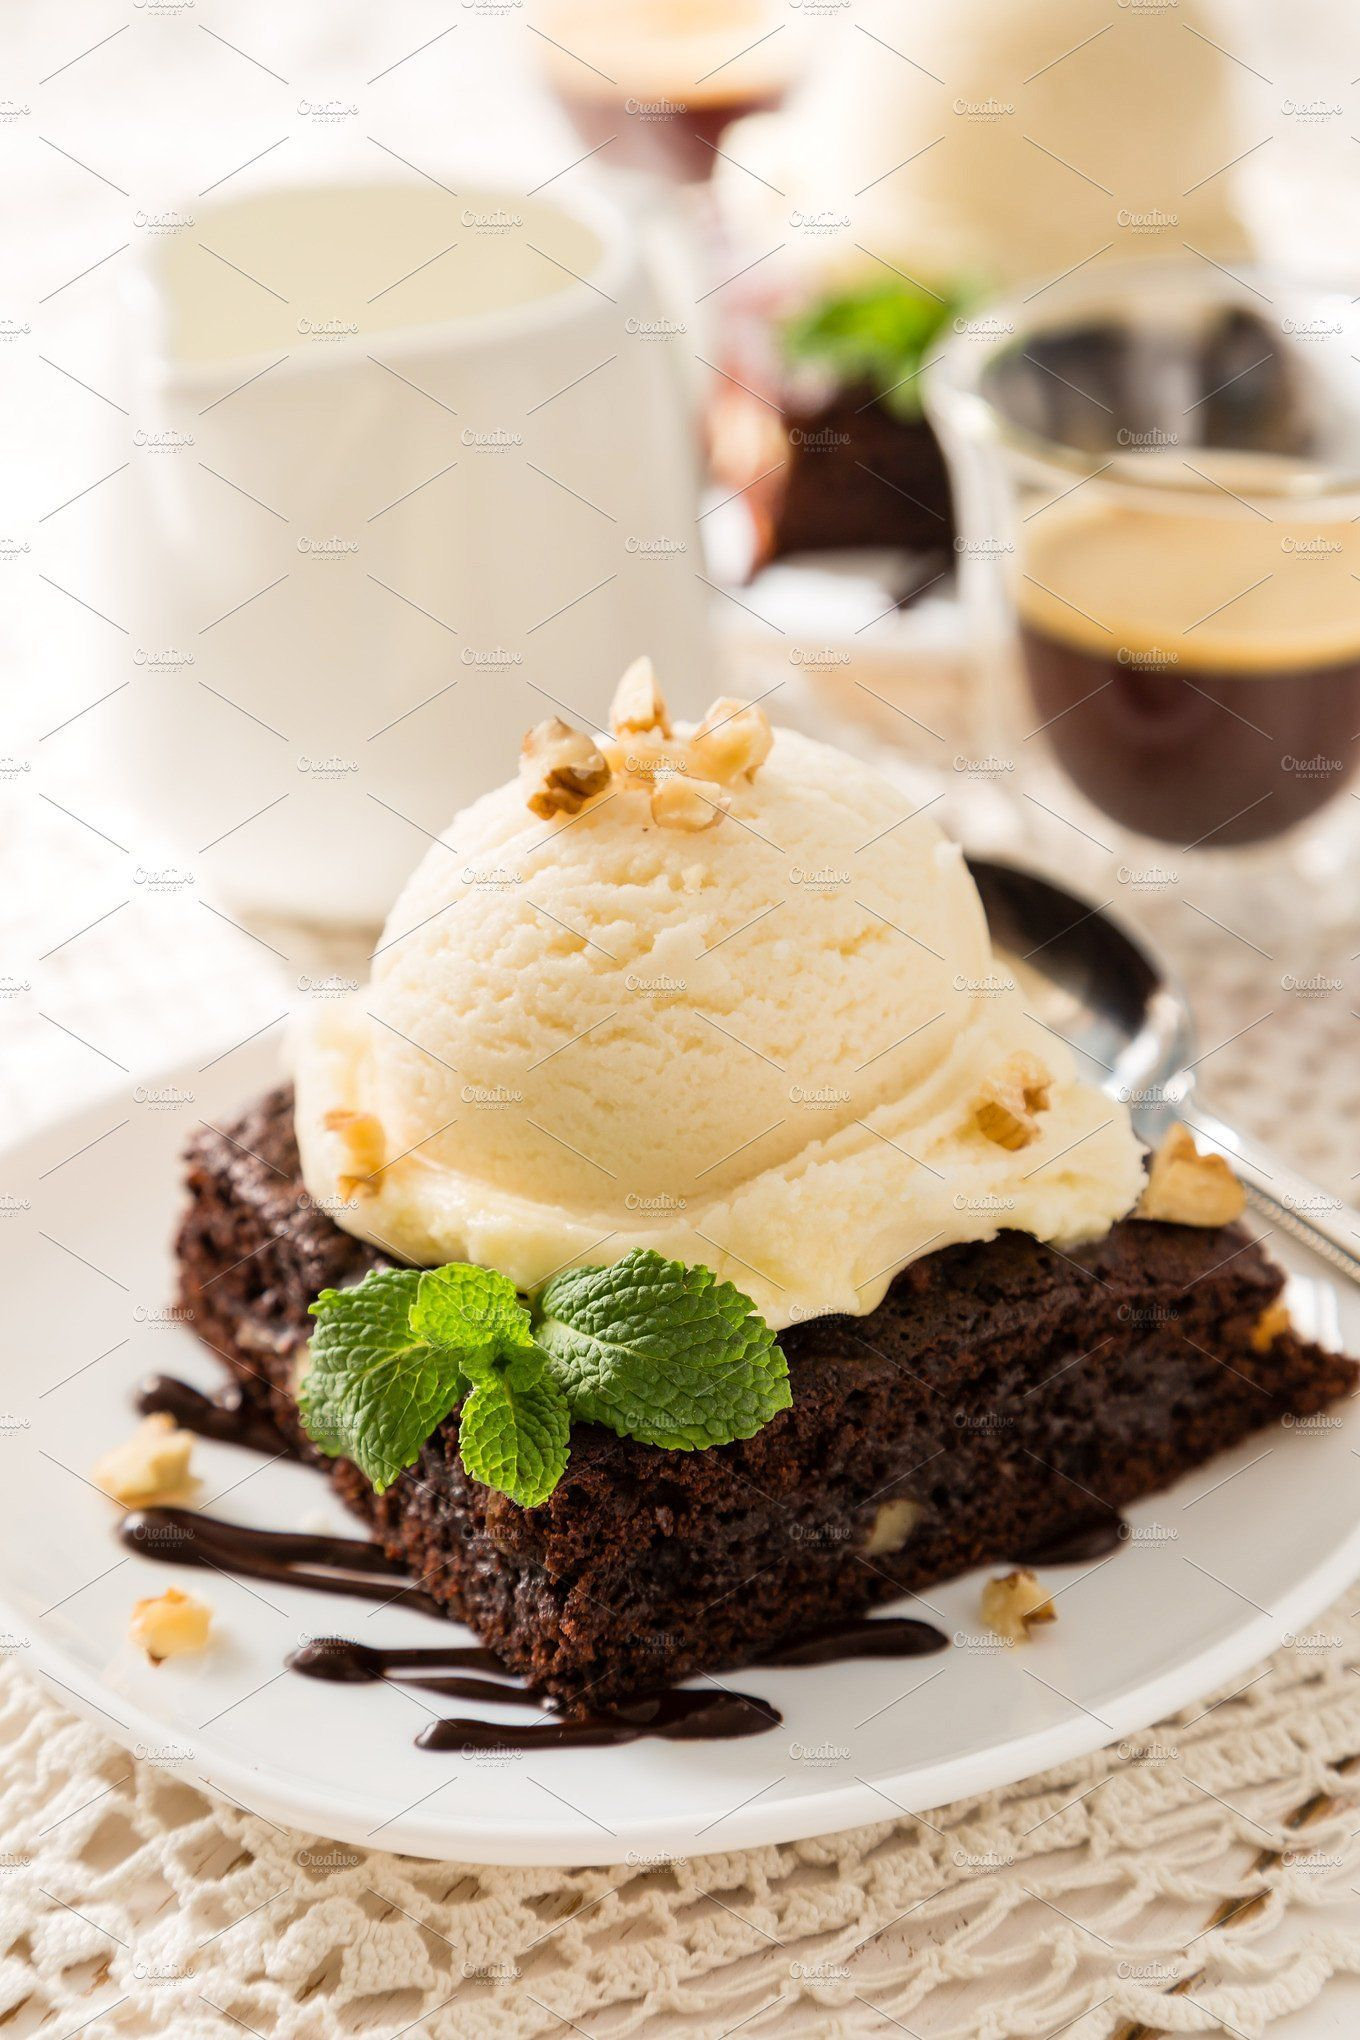 Chocolate Brownie With Vanilla Ice Cream Nuts And Mint Desserts Yummy Ice Cream Yummy Food Dessert